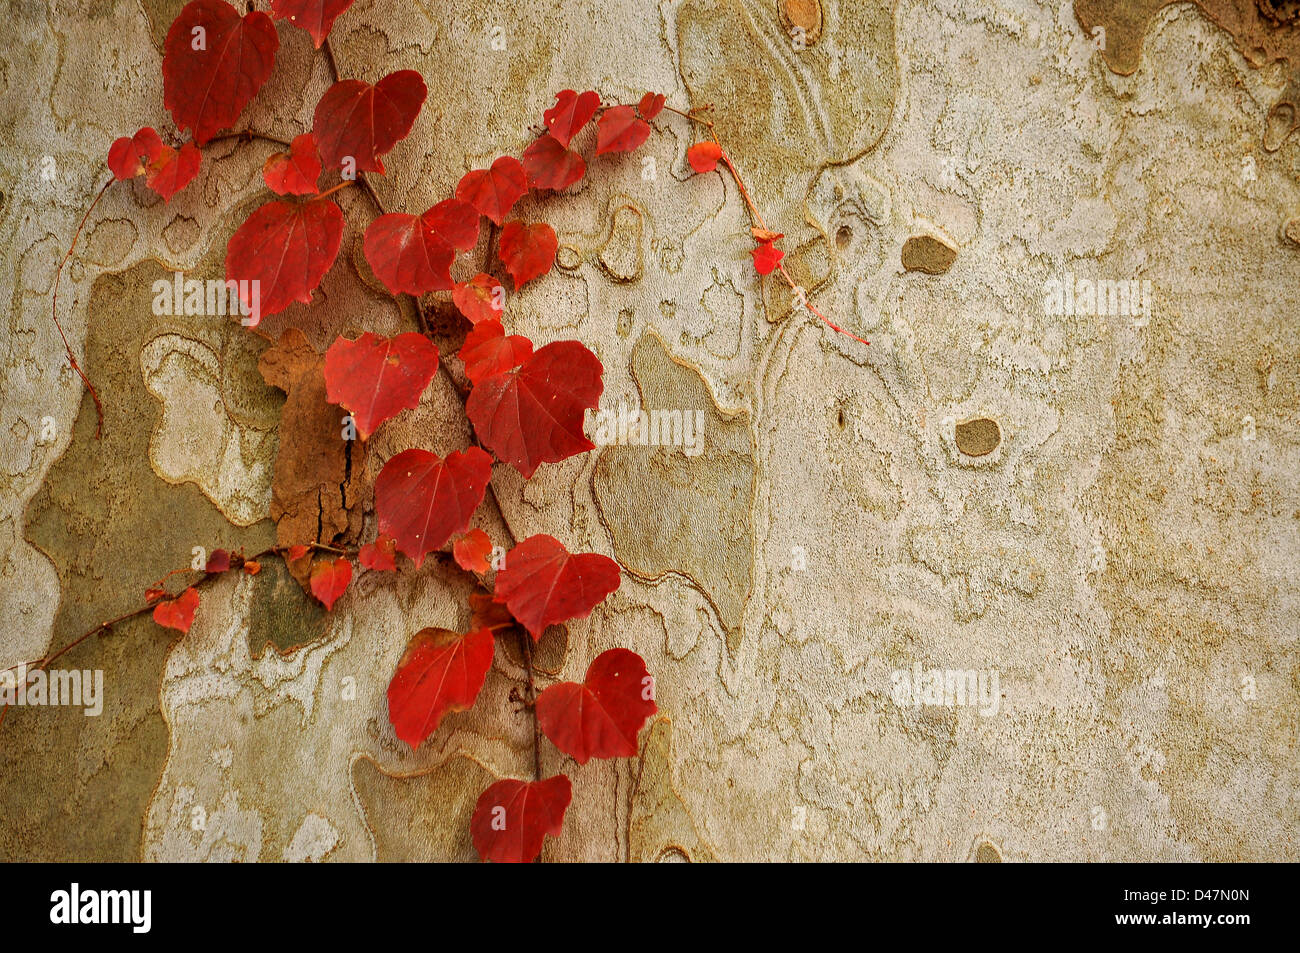 An abstract photo of red leaves growing on the brownish grayish bark of a tree. - Stock Image